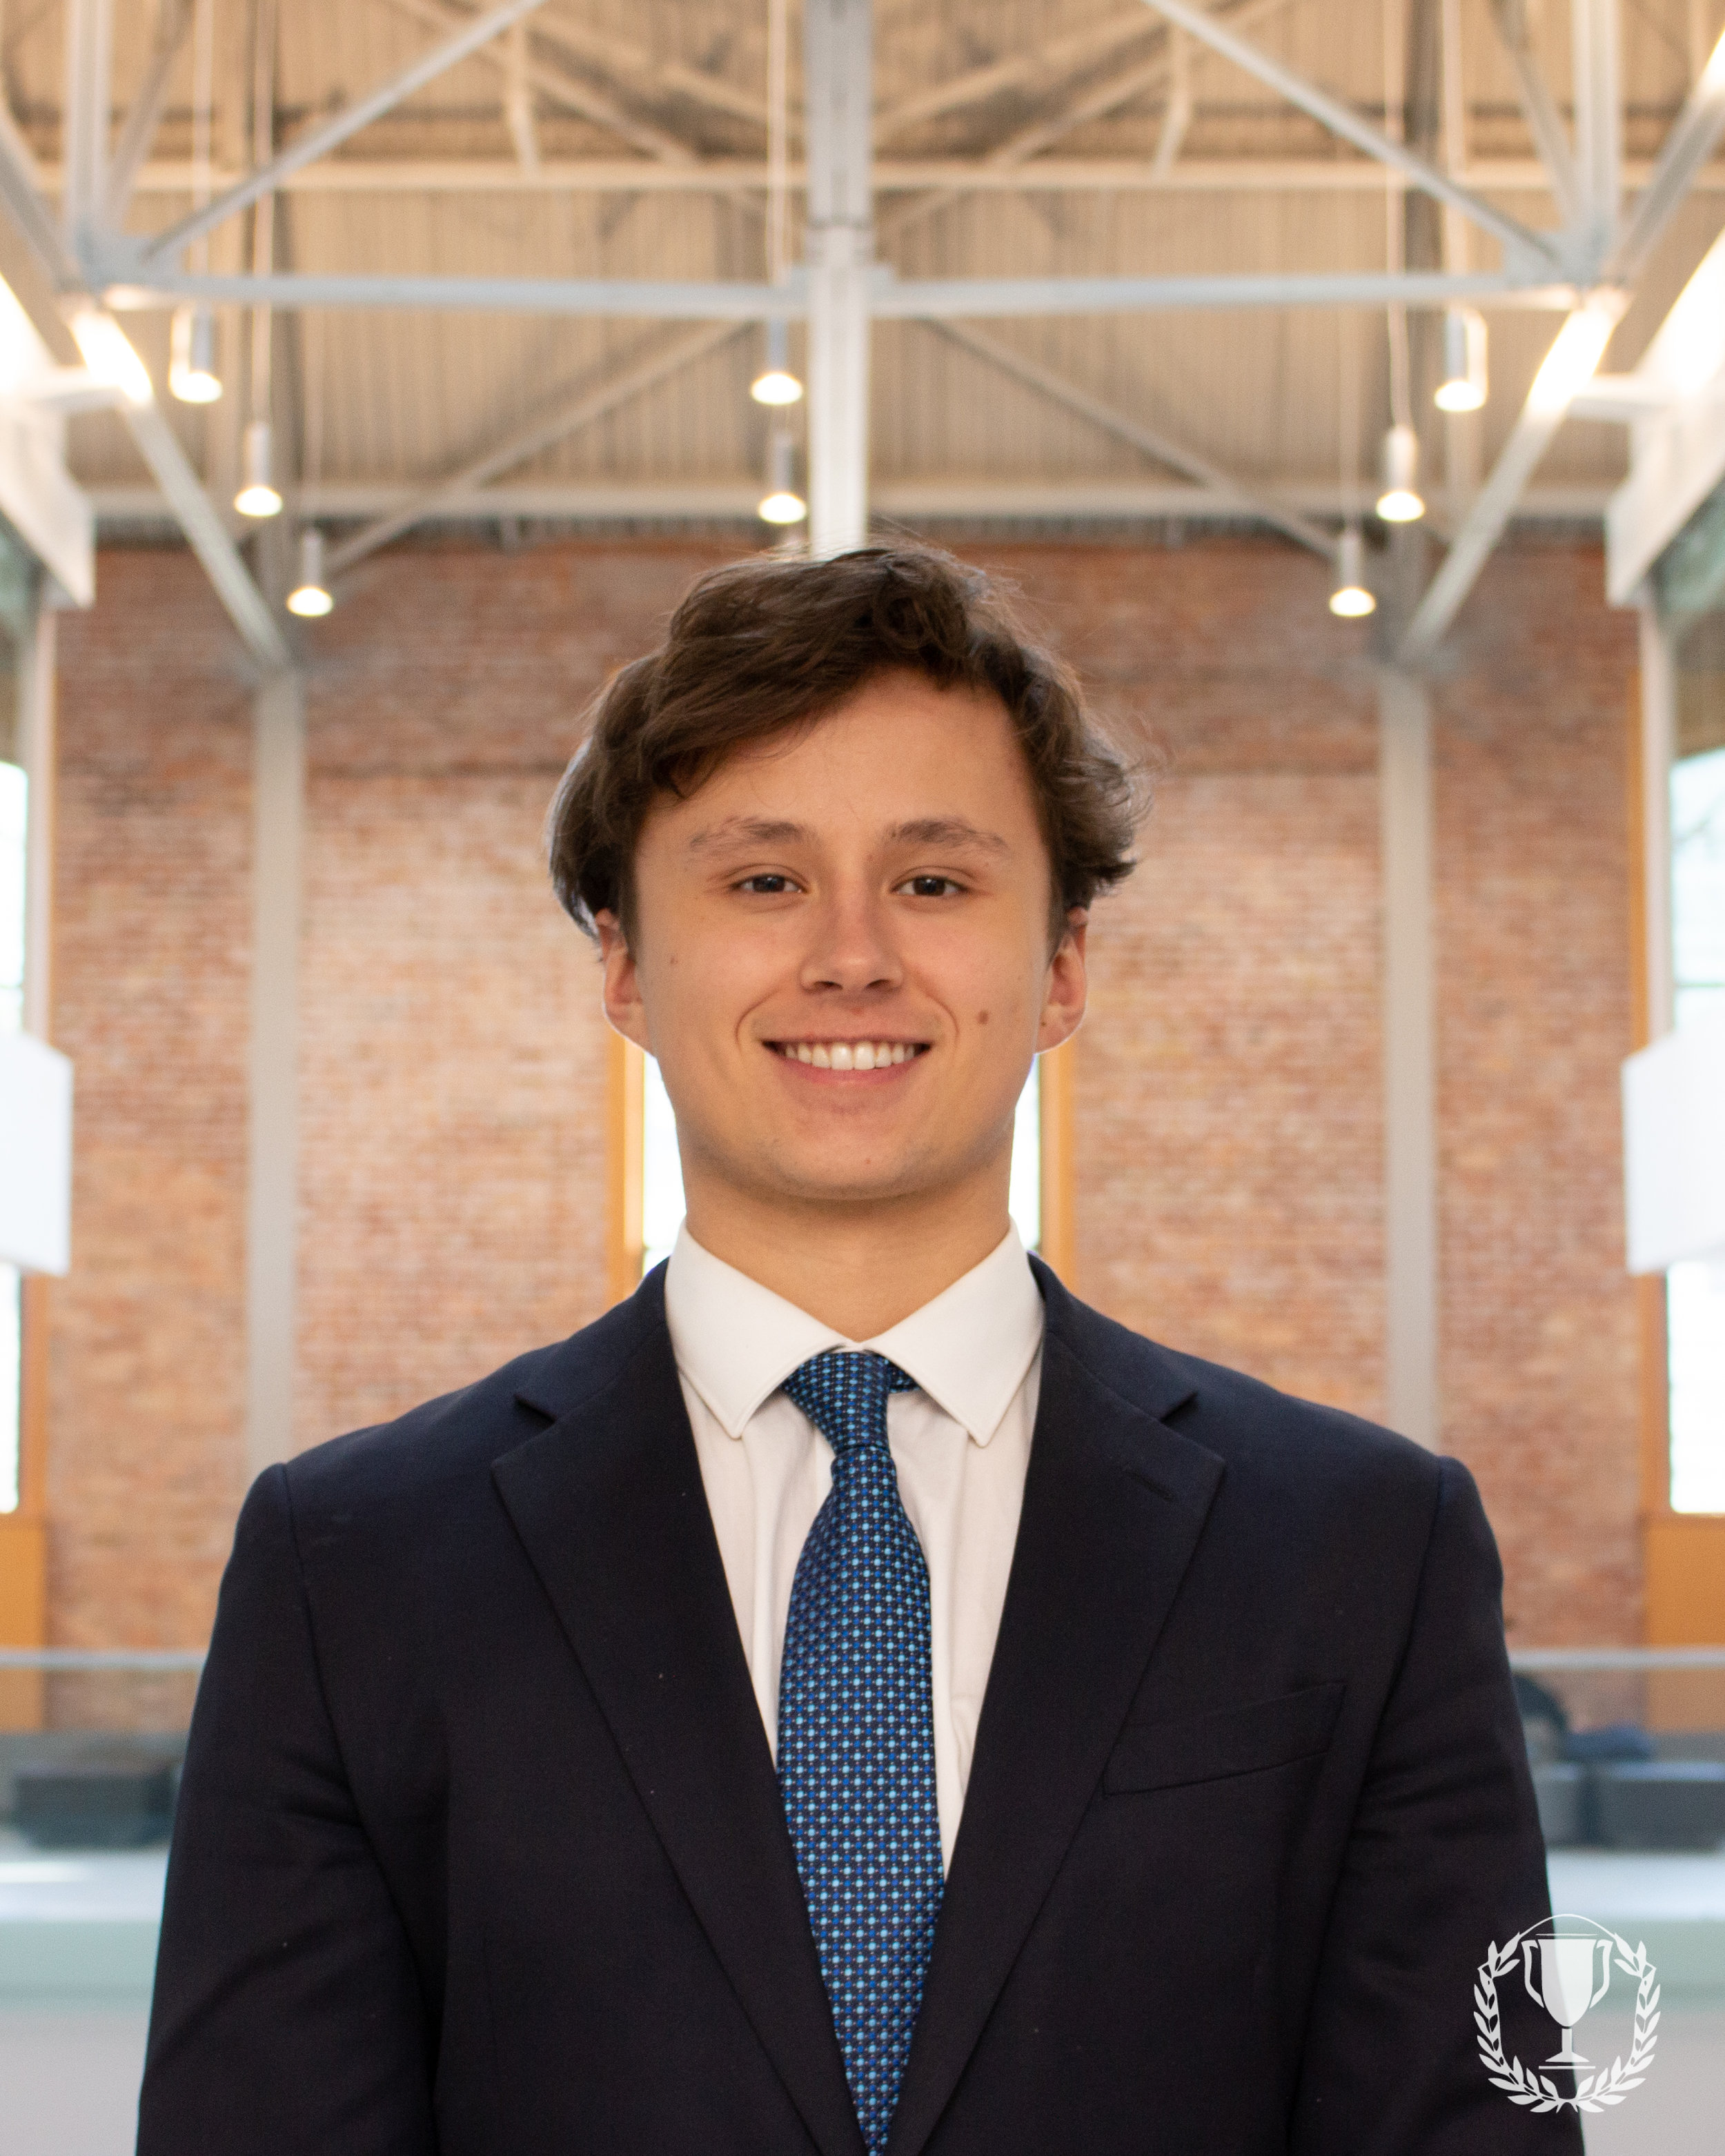 Michael Davidson - Sponsorship Coordinator   Michael could not be more thrilled to join the I.C.B.C executive family this year as a Sponsorship Coordinator. He is delighted to be part of such a storied competition and looks forward to working alongside his extraordinary team. As a Sponsorship Coordinator, he is eager to connect and form partnerships with a breadth of amazing organizations. In Michael's spare time you can catch him drinking a Booster Juice or talking about how much better the weather is in Vancouver compared to Kingston.